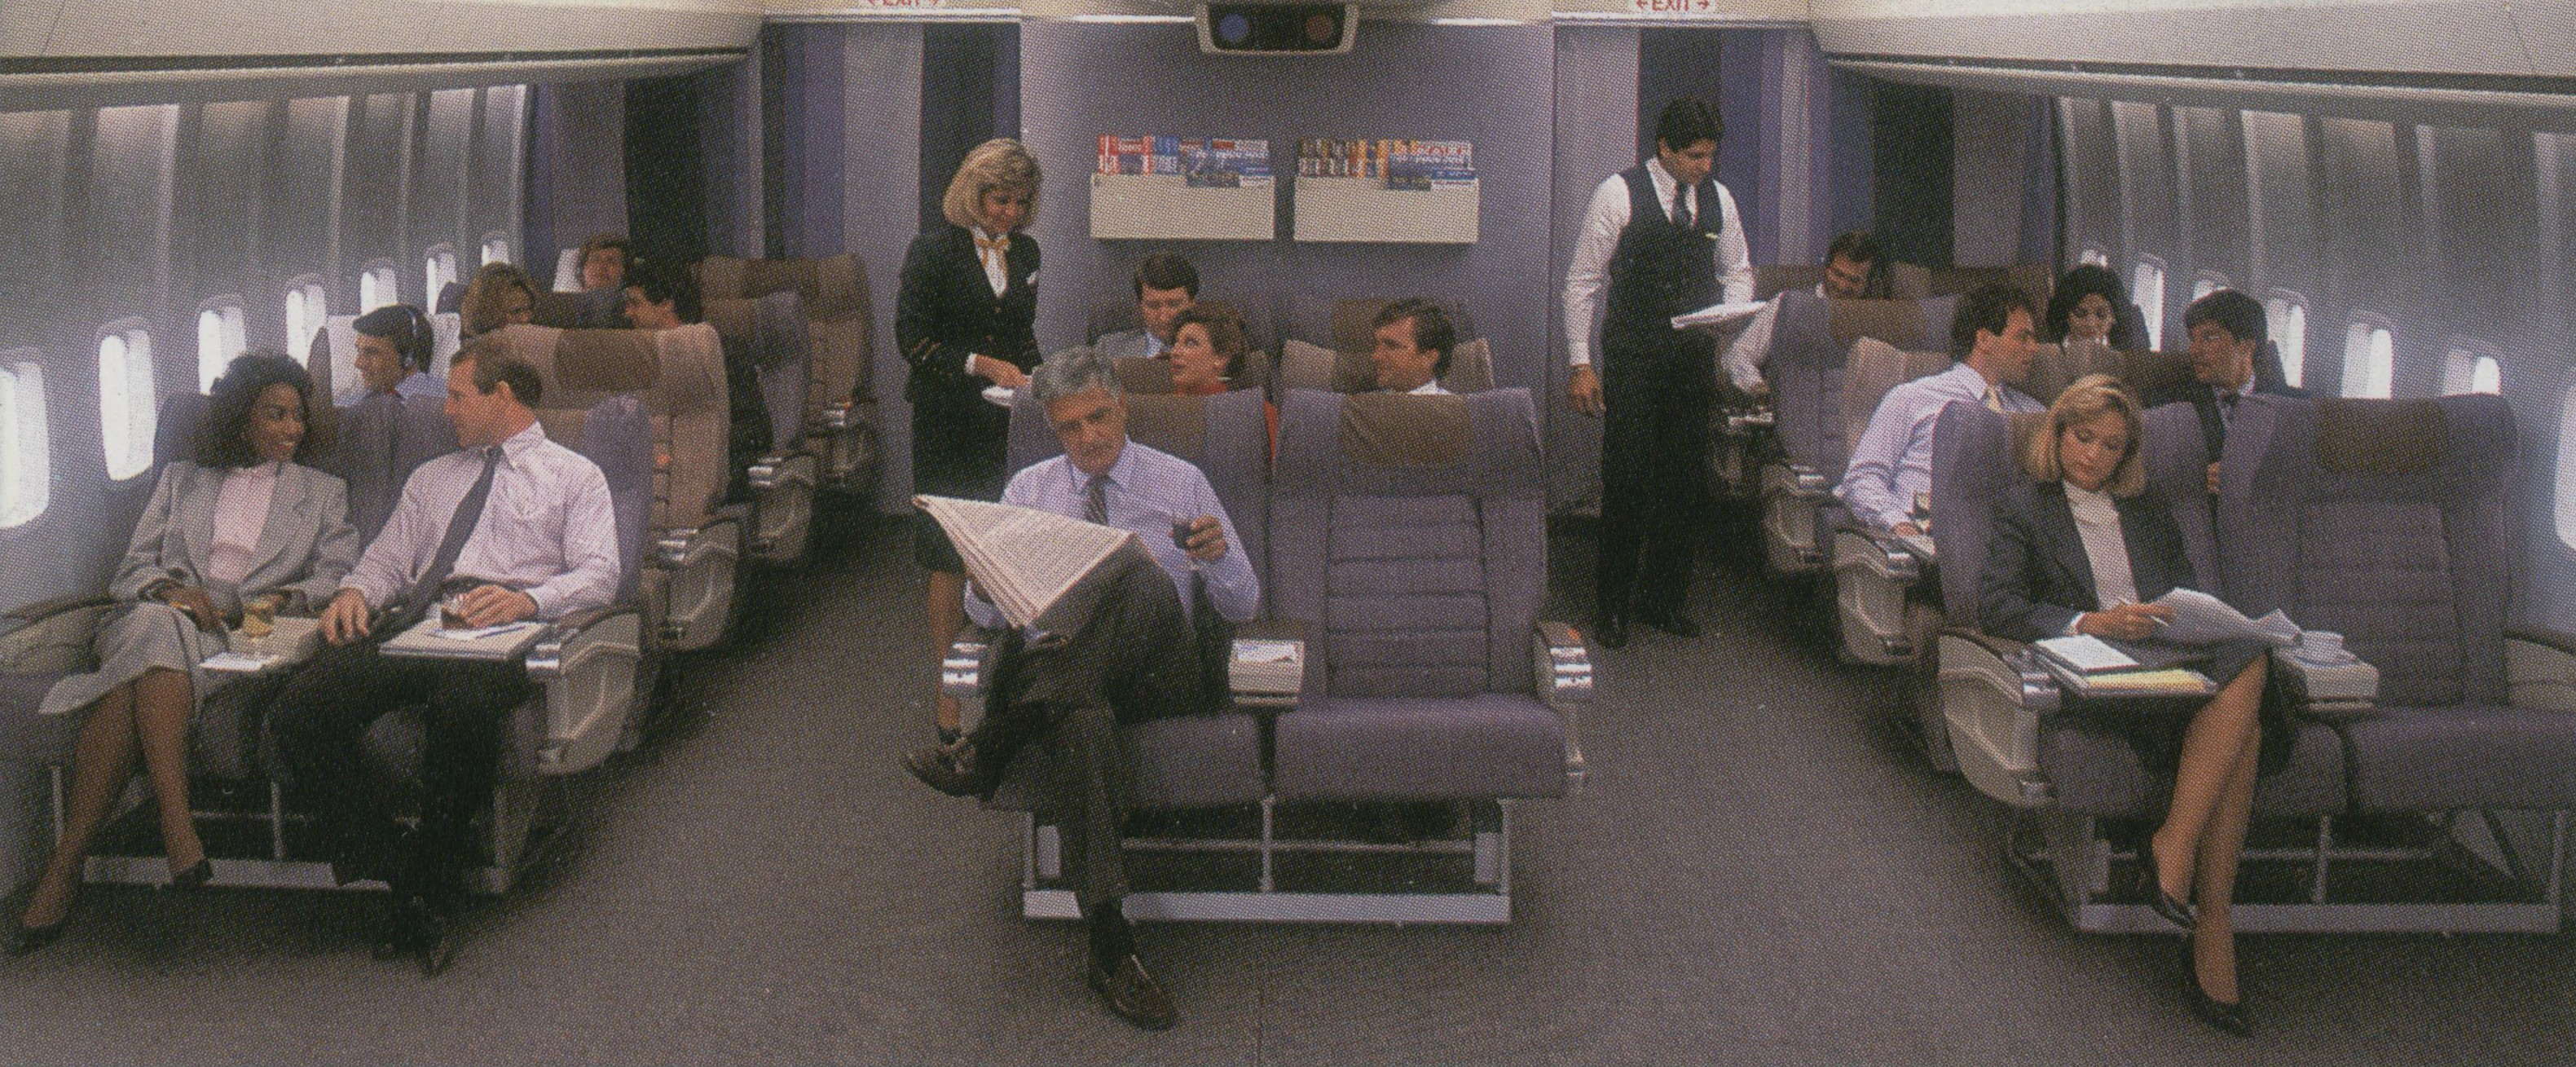 In the late 1980s Pan Am introduced a herringbone pattern for seat covers in Clipper Class (Business Class).  The coverings came in two colors blue and beige.  Both colors can be seen in this photo.